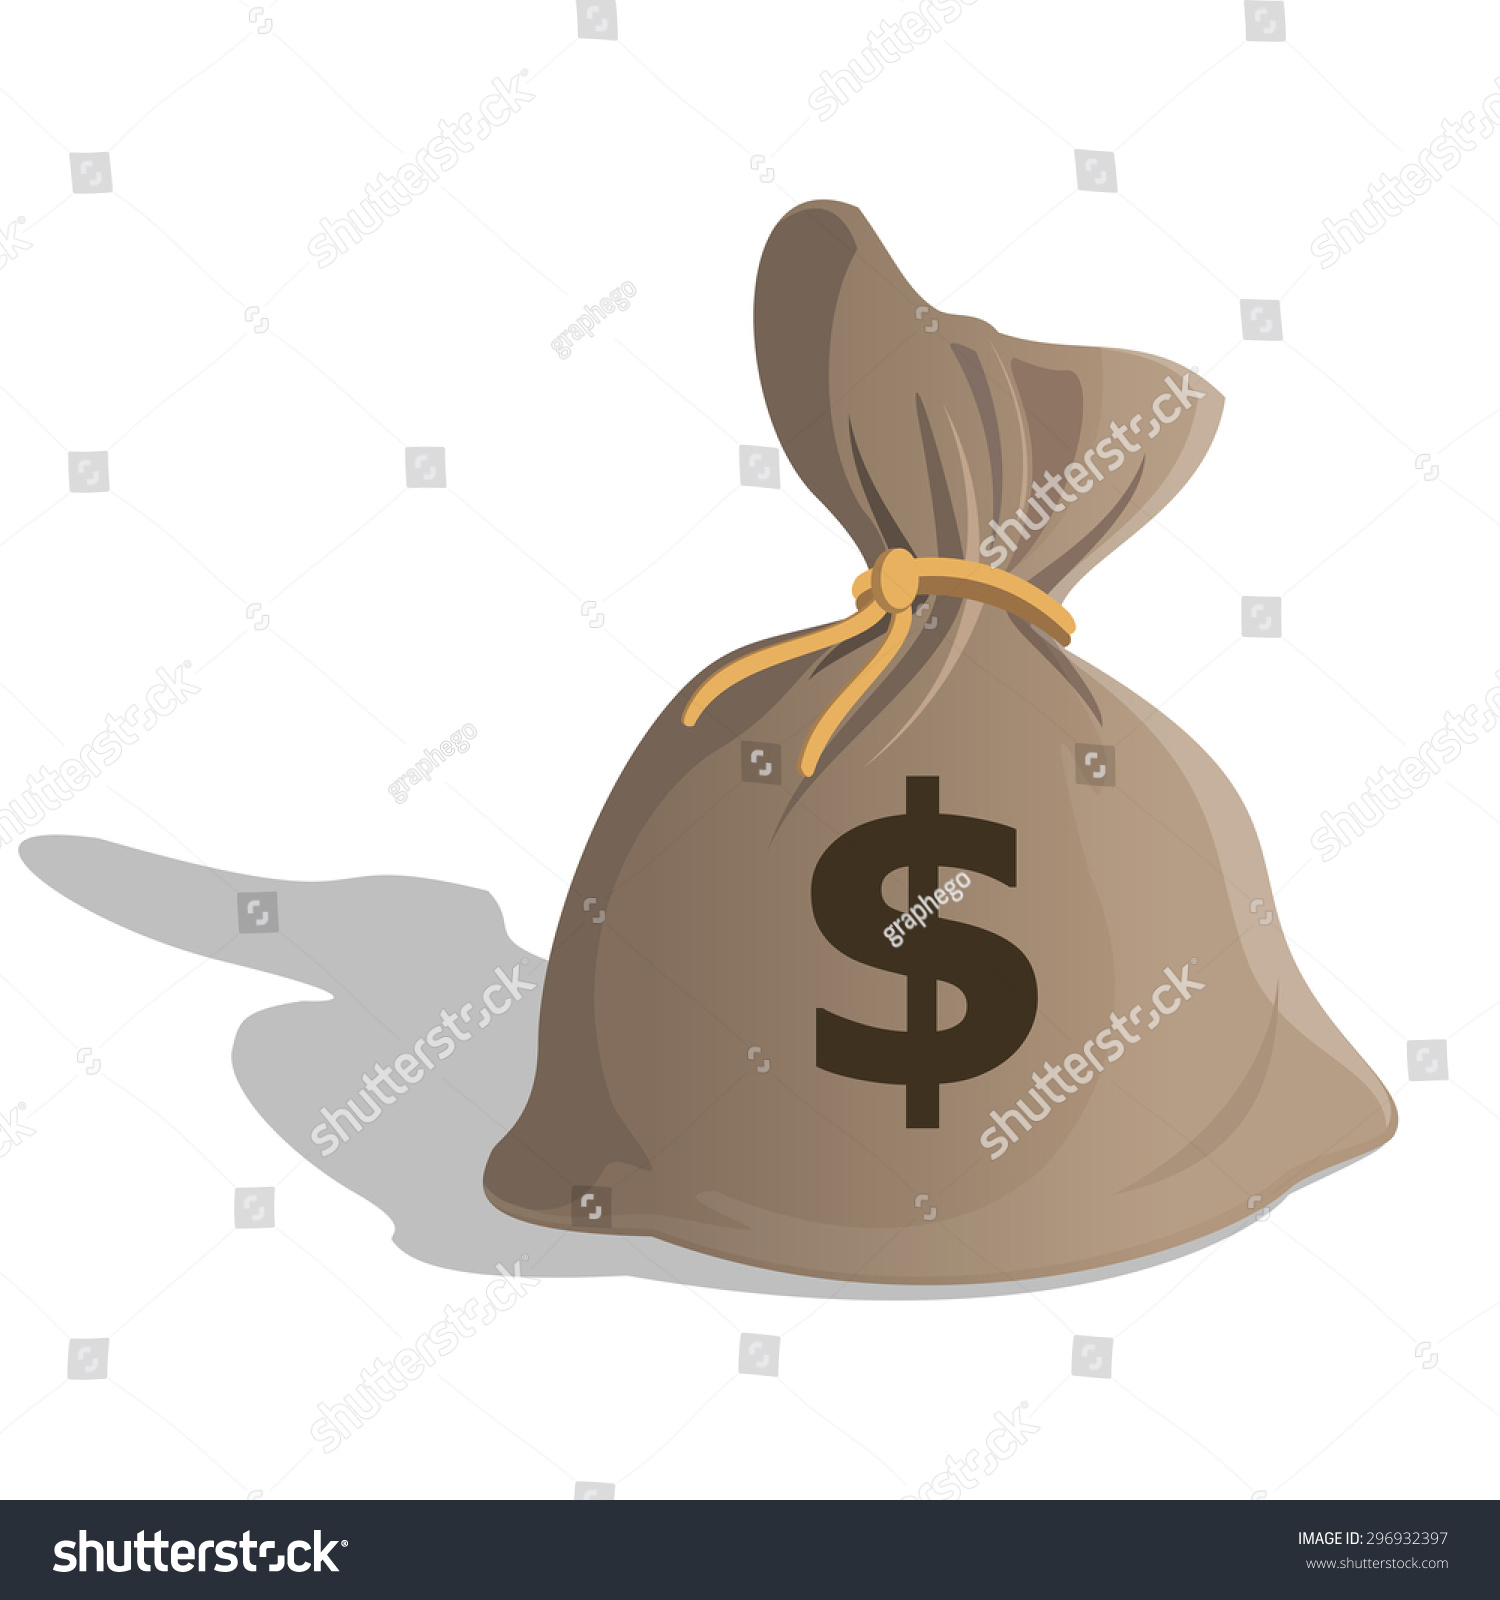 Bag With Money Sign Cartoon: Money Bag Or Sack Cartoon Style Icon With Dollar Sign